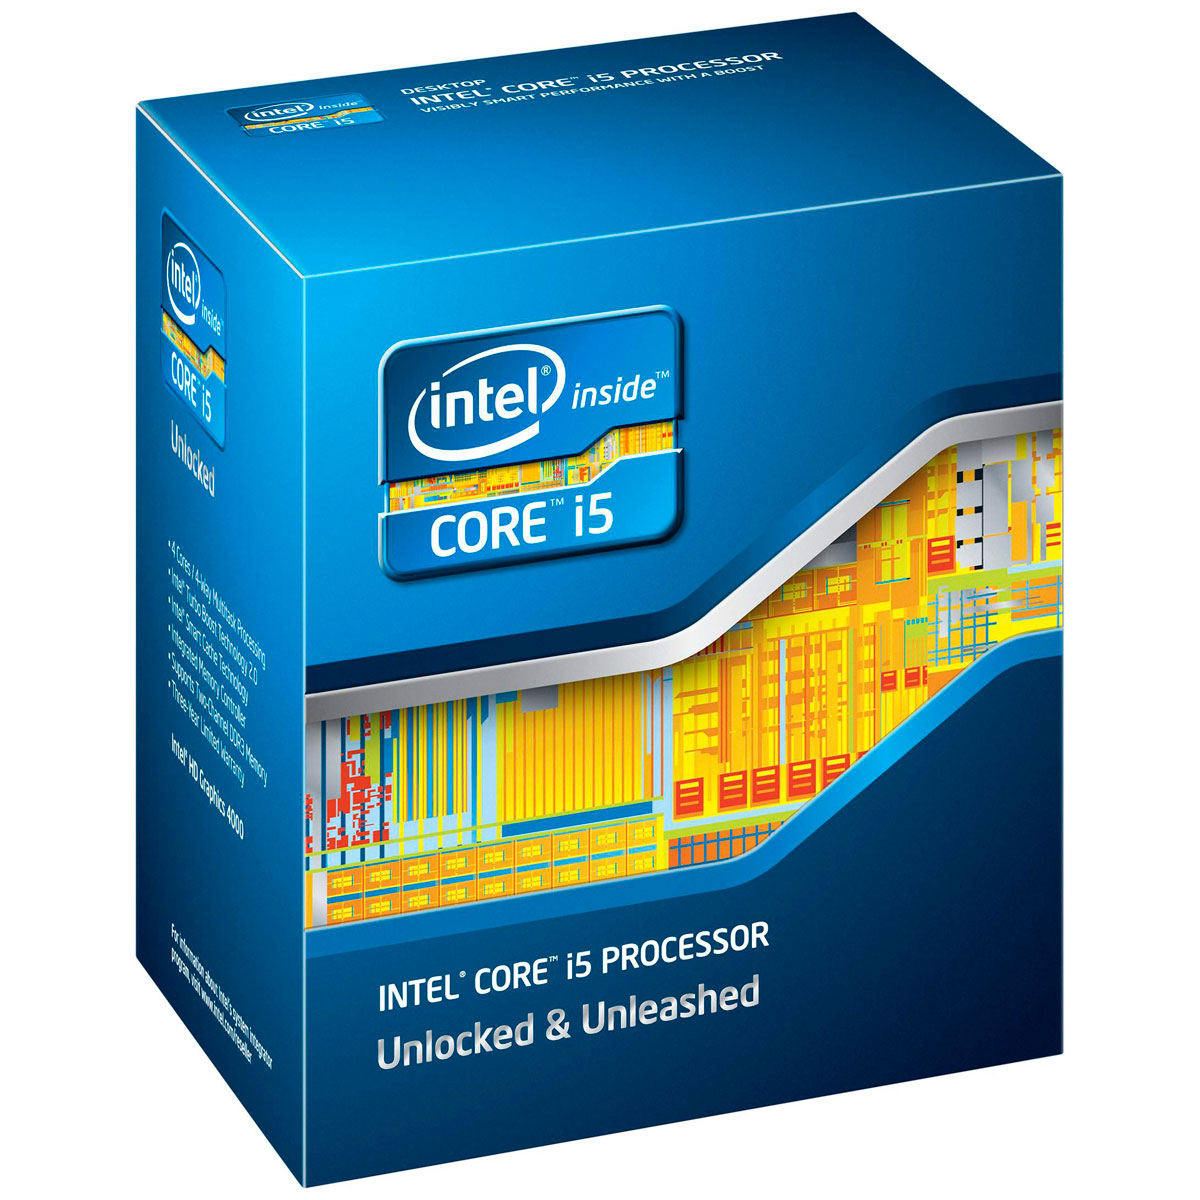 Processeur Intel Core i5-3570K (3.4 GHz) Processeur Quad Core Socket 1155 Cache L3 6 Mo Intel HD Graphics 4000 0.022 micron (version boîte - garantie Intel 3 ans)